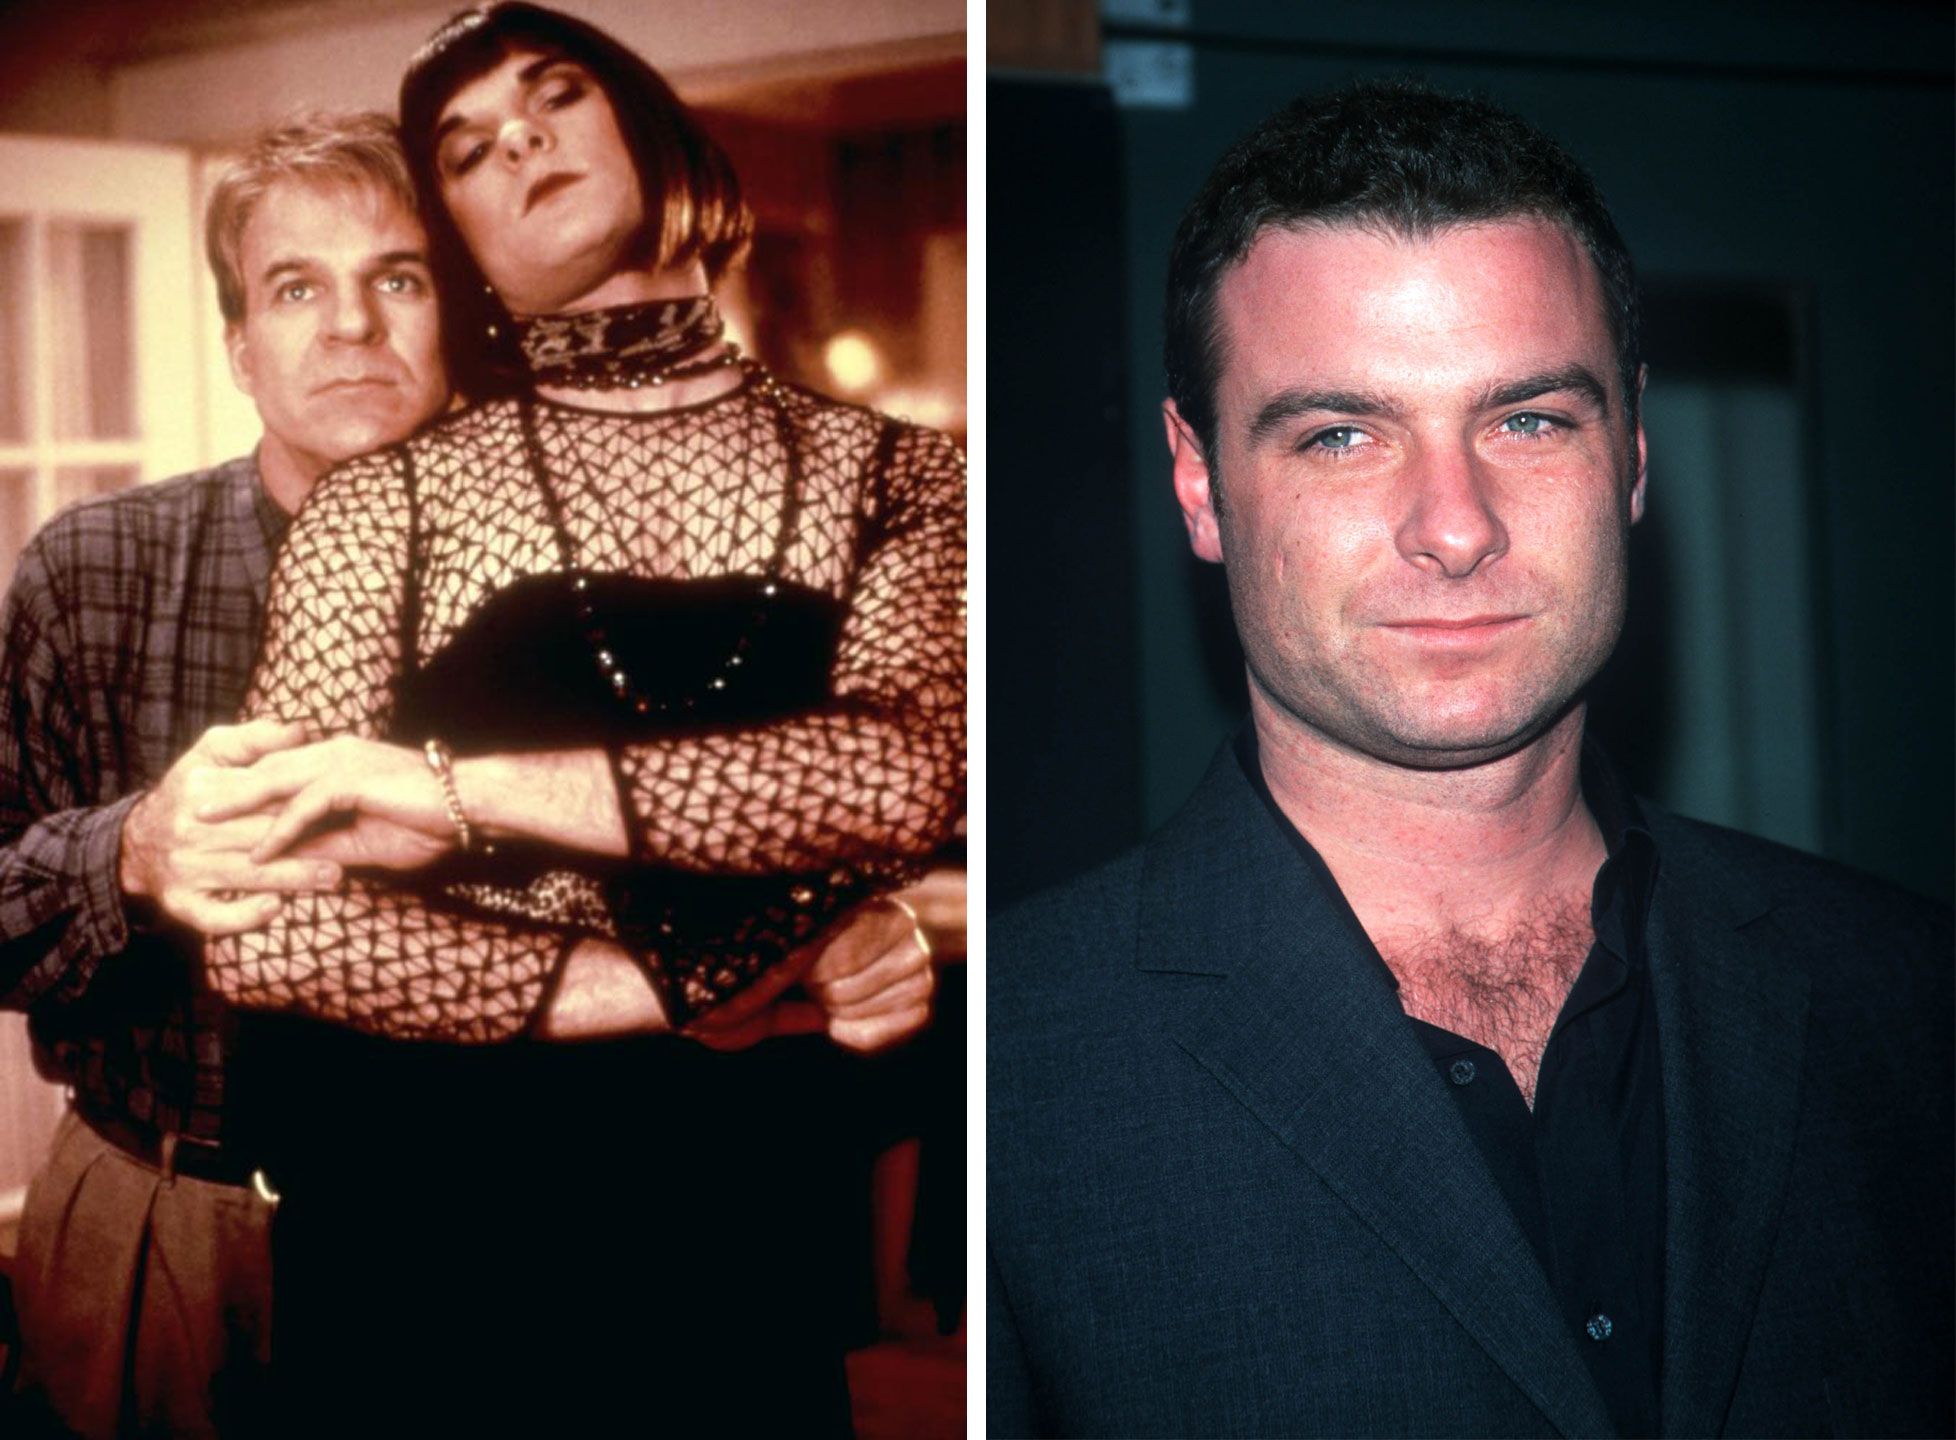 Liev Schreiber as Chris in Mixed Nuts